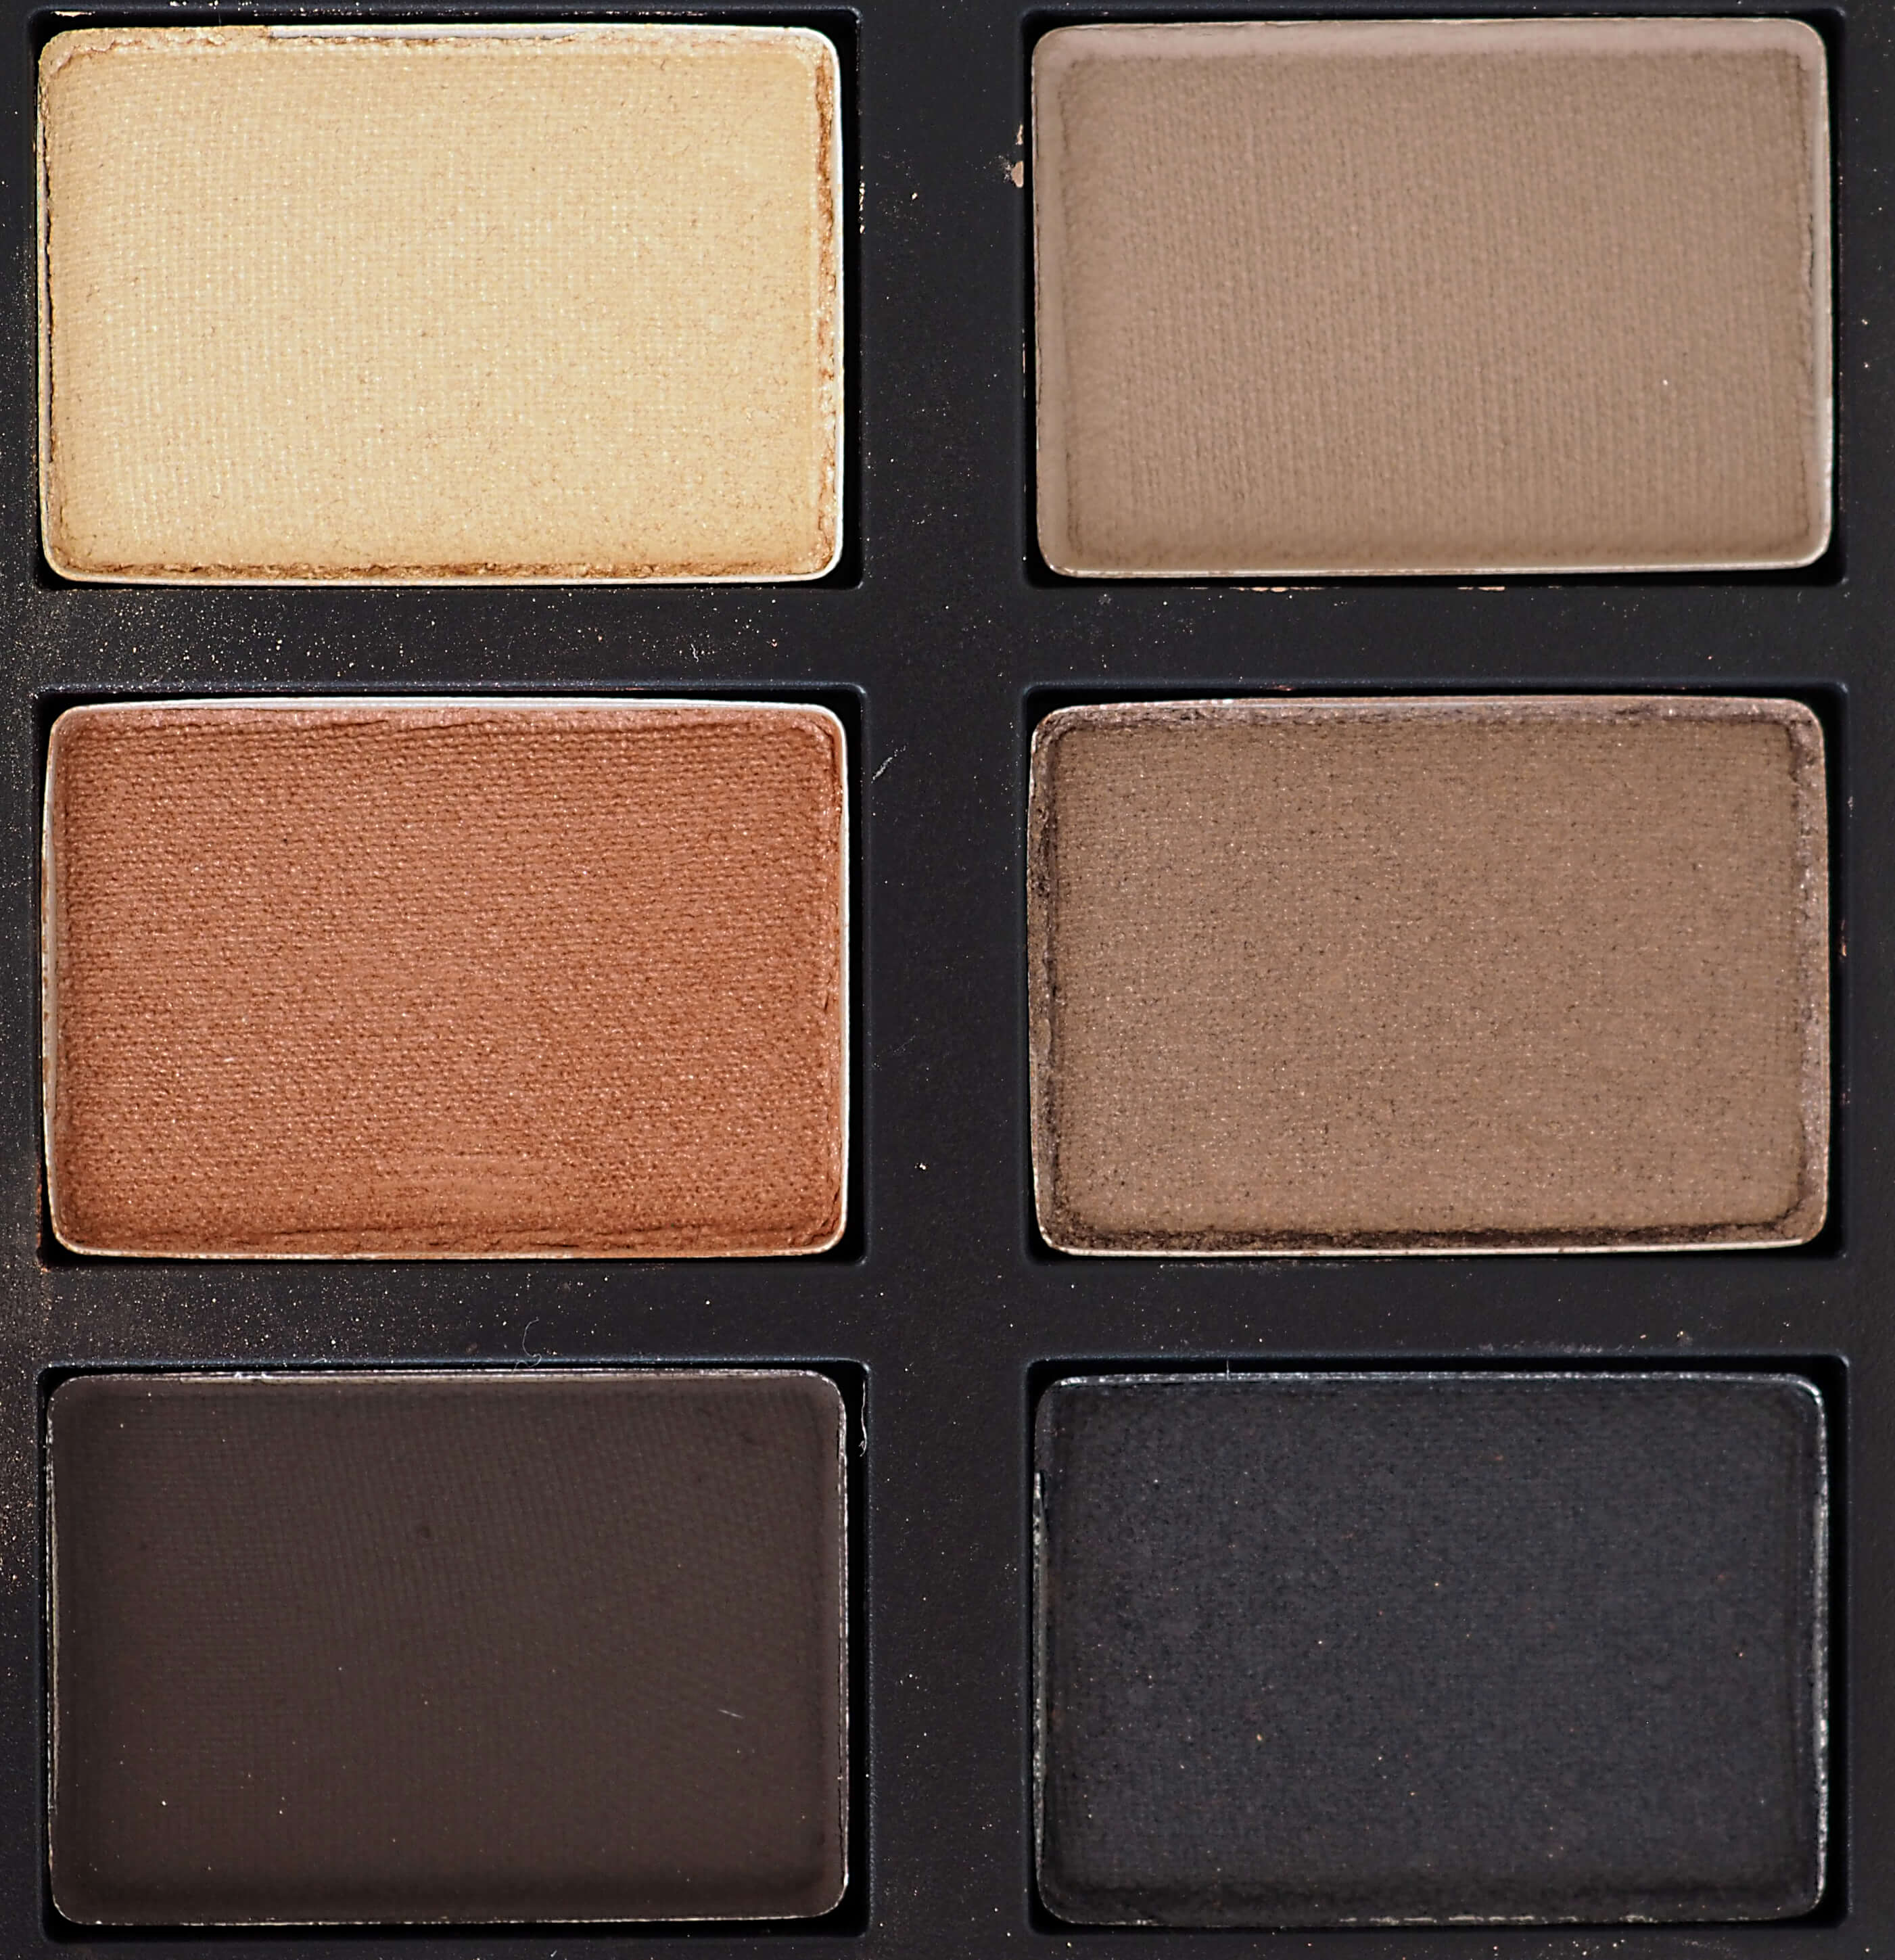 KOLORY NARS NARSissist LOADED EYESHADOW PALETTE